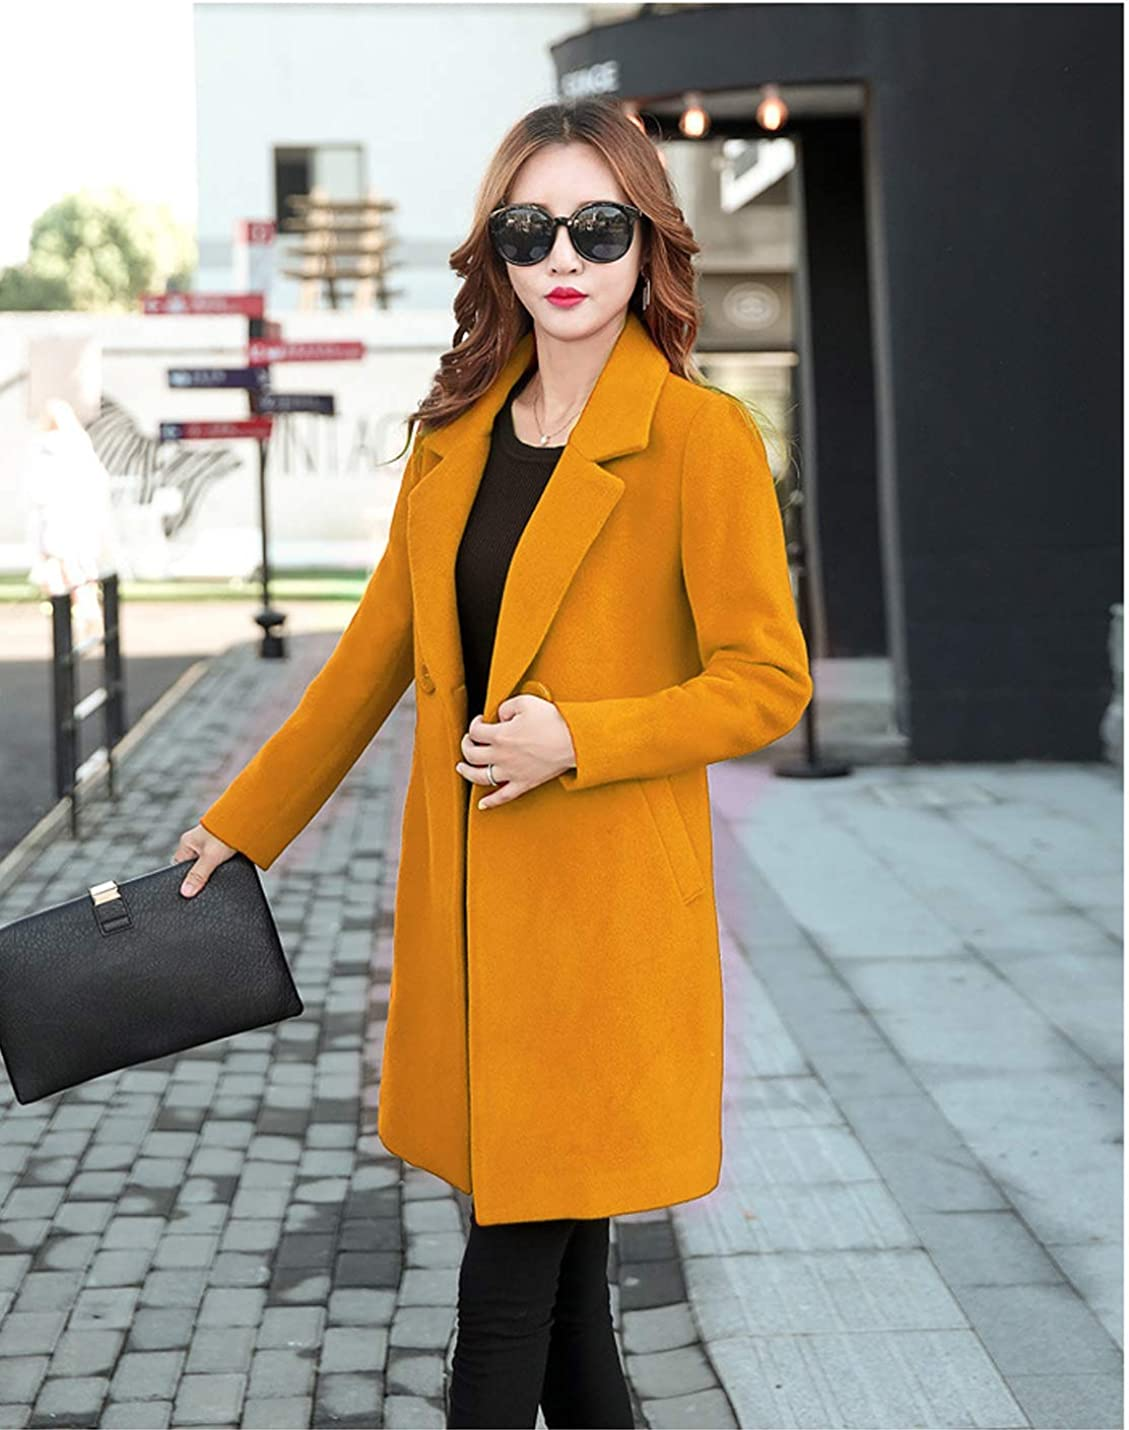 Jenkoon Womens Winter Outdoor Double Breasted Cotton Blend Pea Coat Jacket